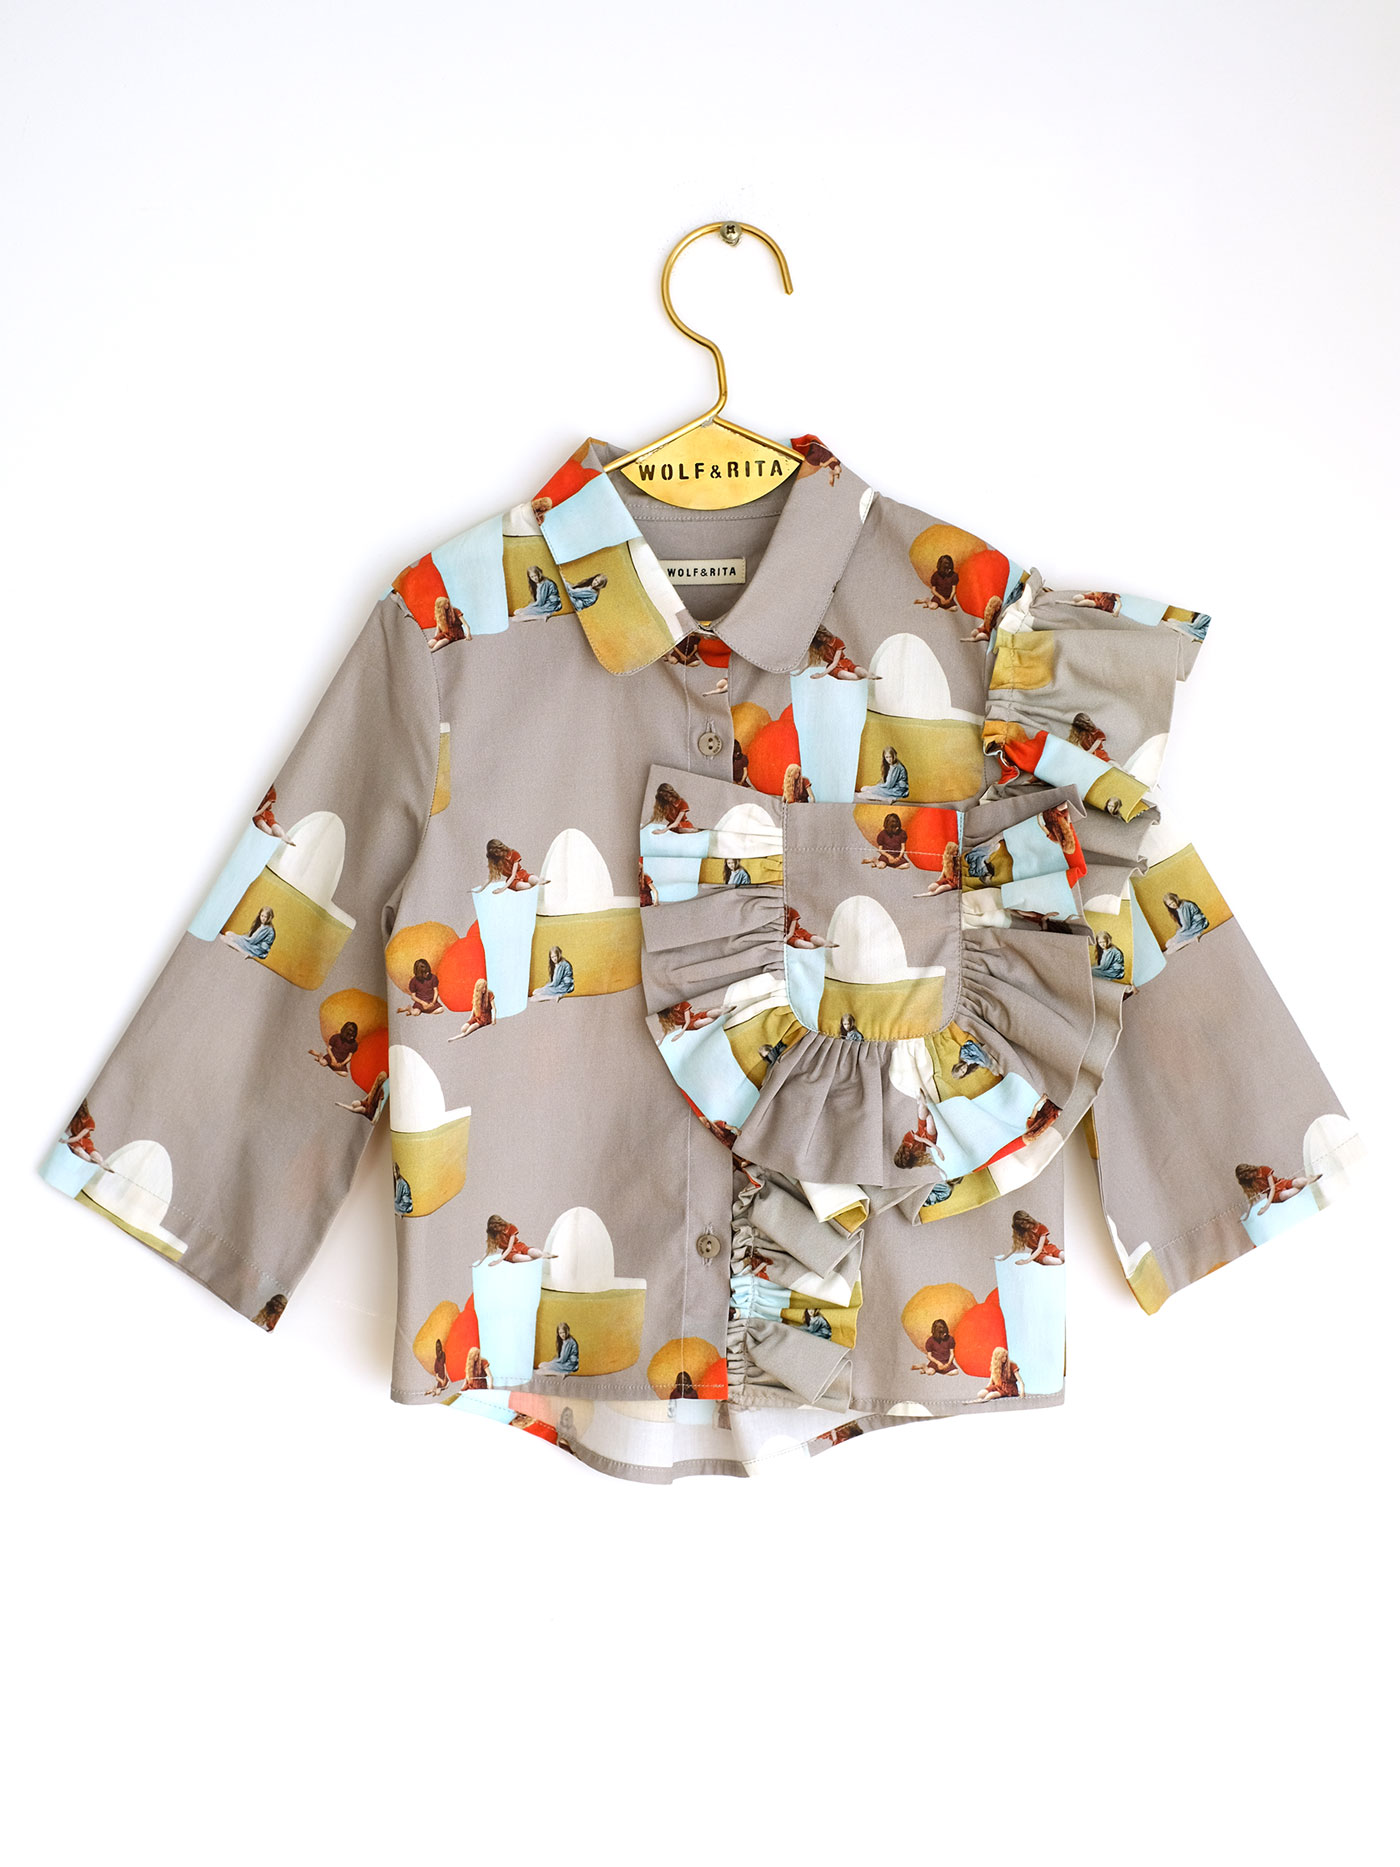 Wolf & Rita Grey - Carolina No Electricity Blouse - Clothing